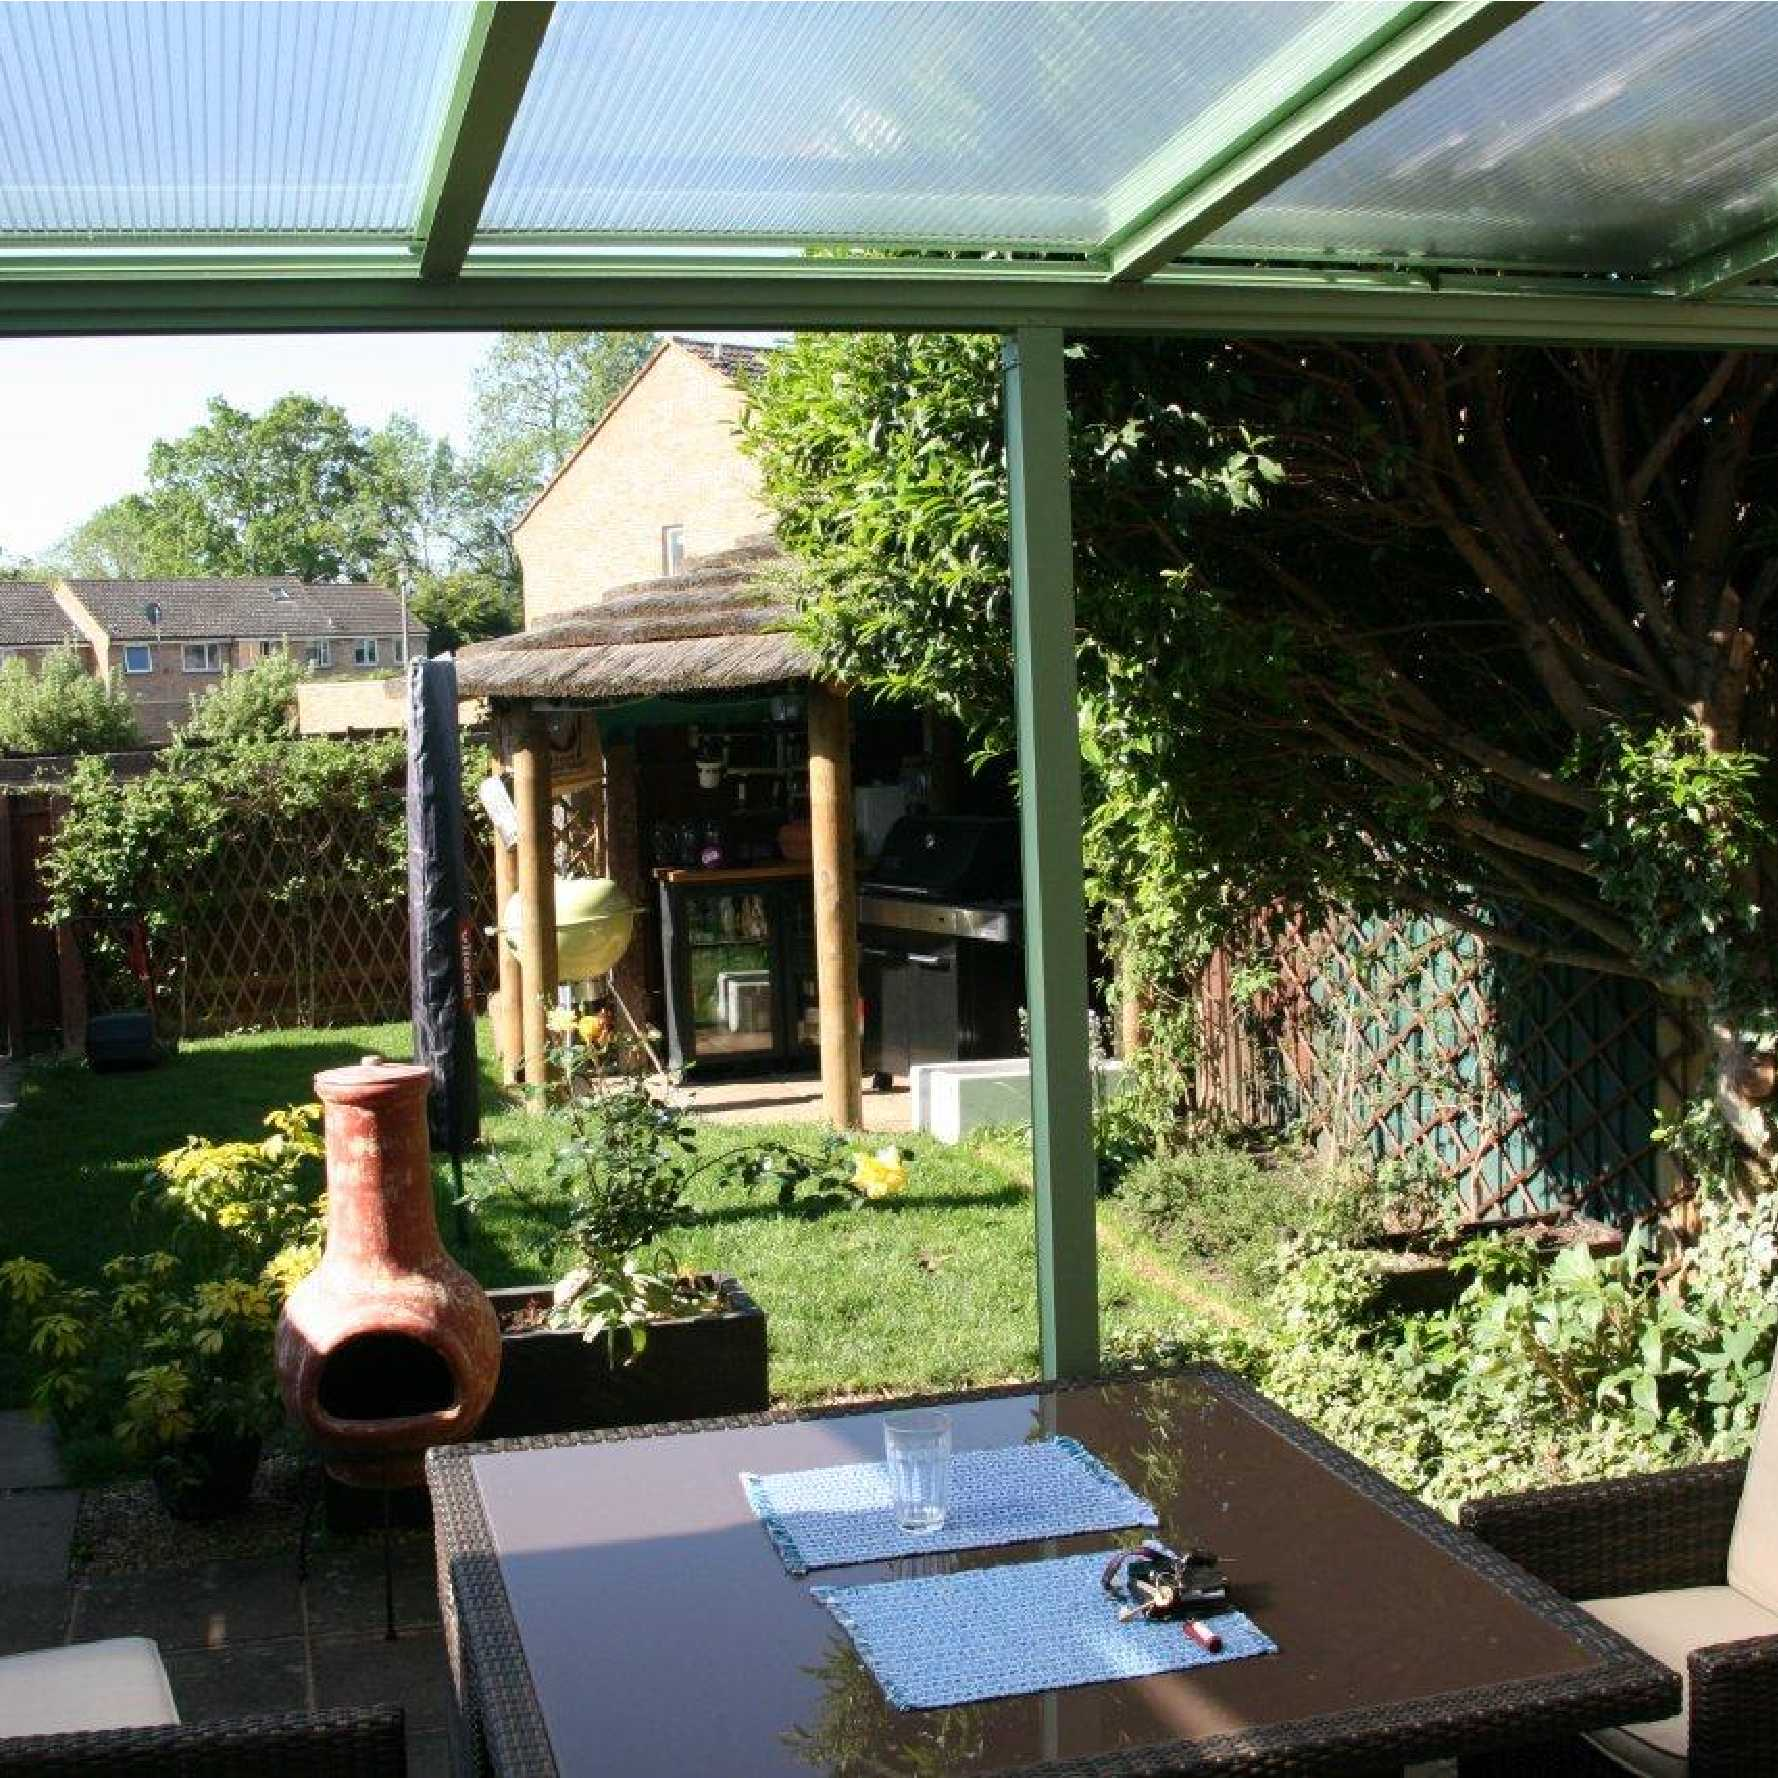 Affordable Omega Smart Lean-To Canopy with 16mm Polycarbonate Glazing - 5.9m (W) x 4.5m (P), (3) Supporting Posts